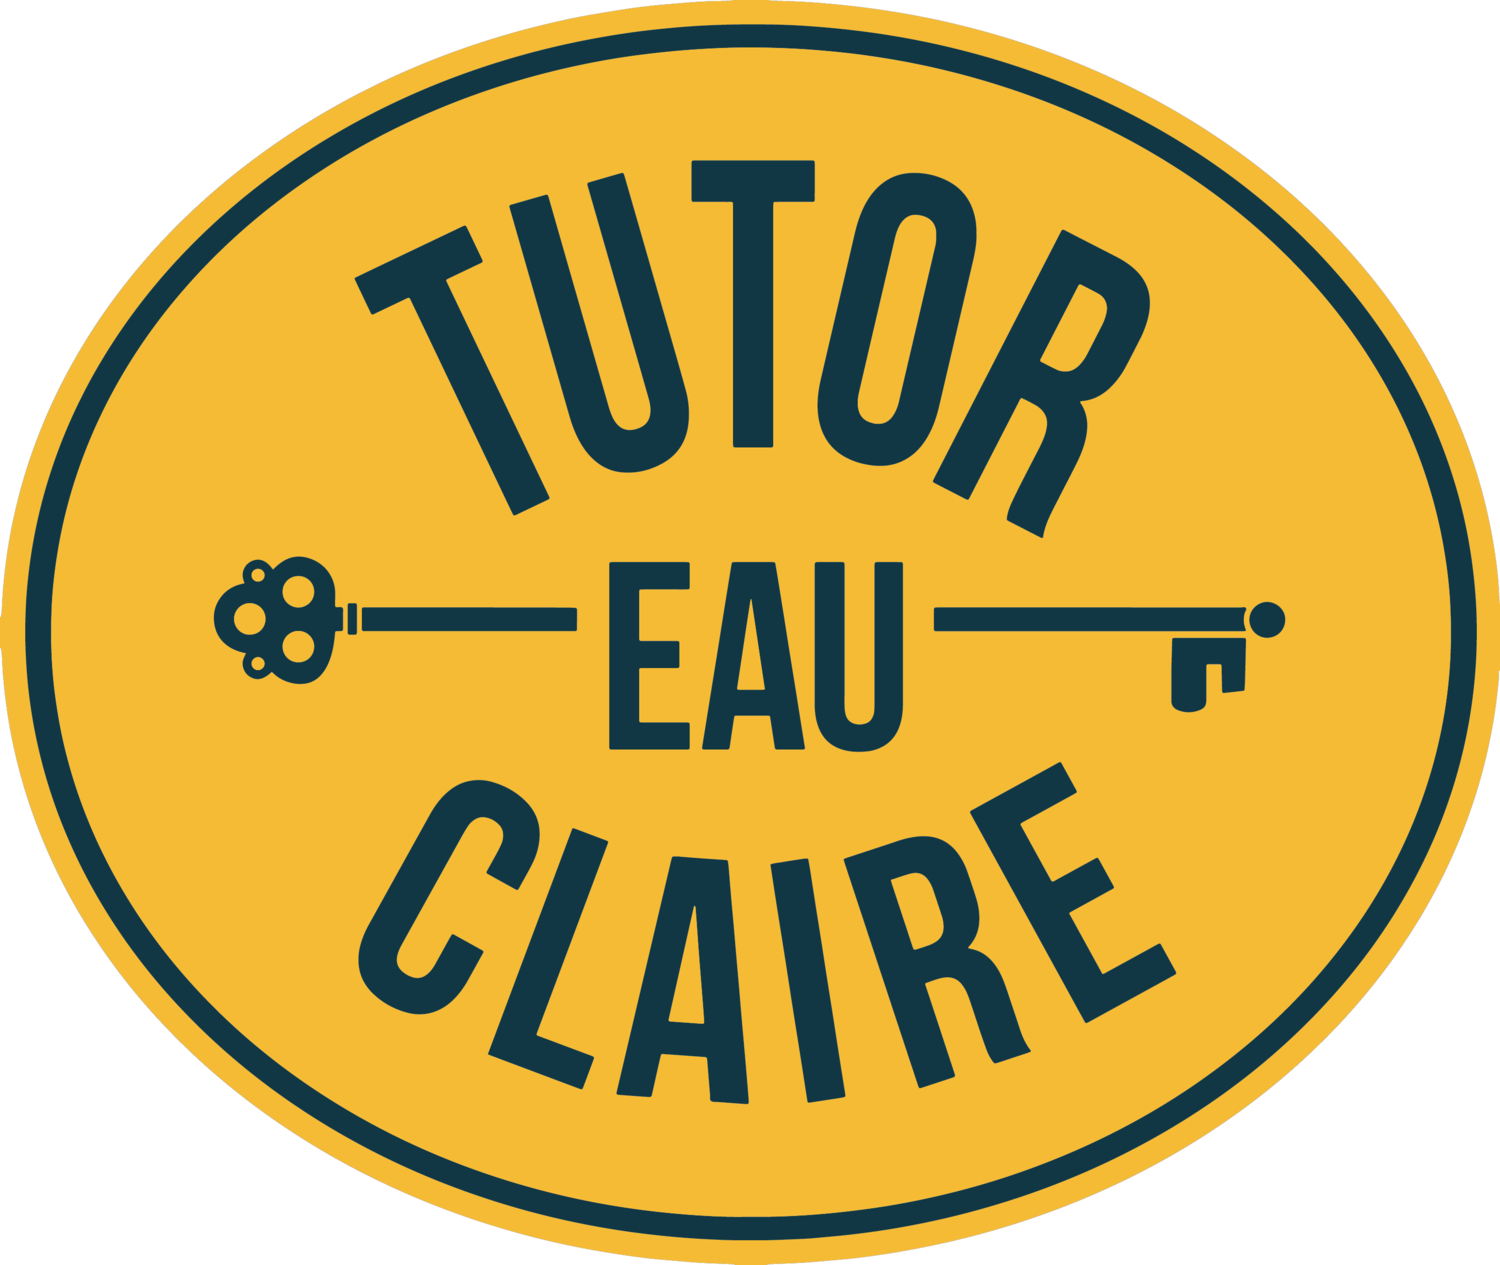 Tutor Eau Claire Dyslexia Resource Center